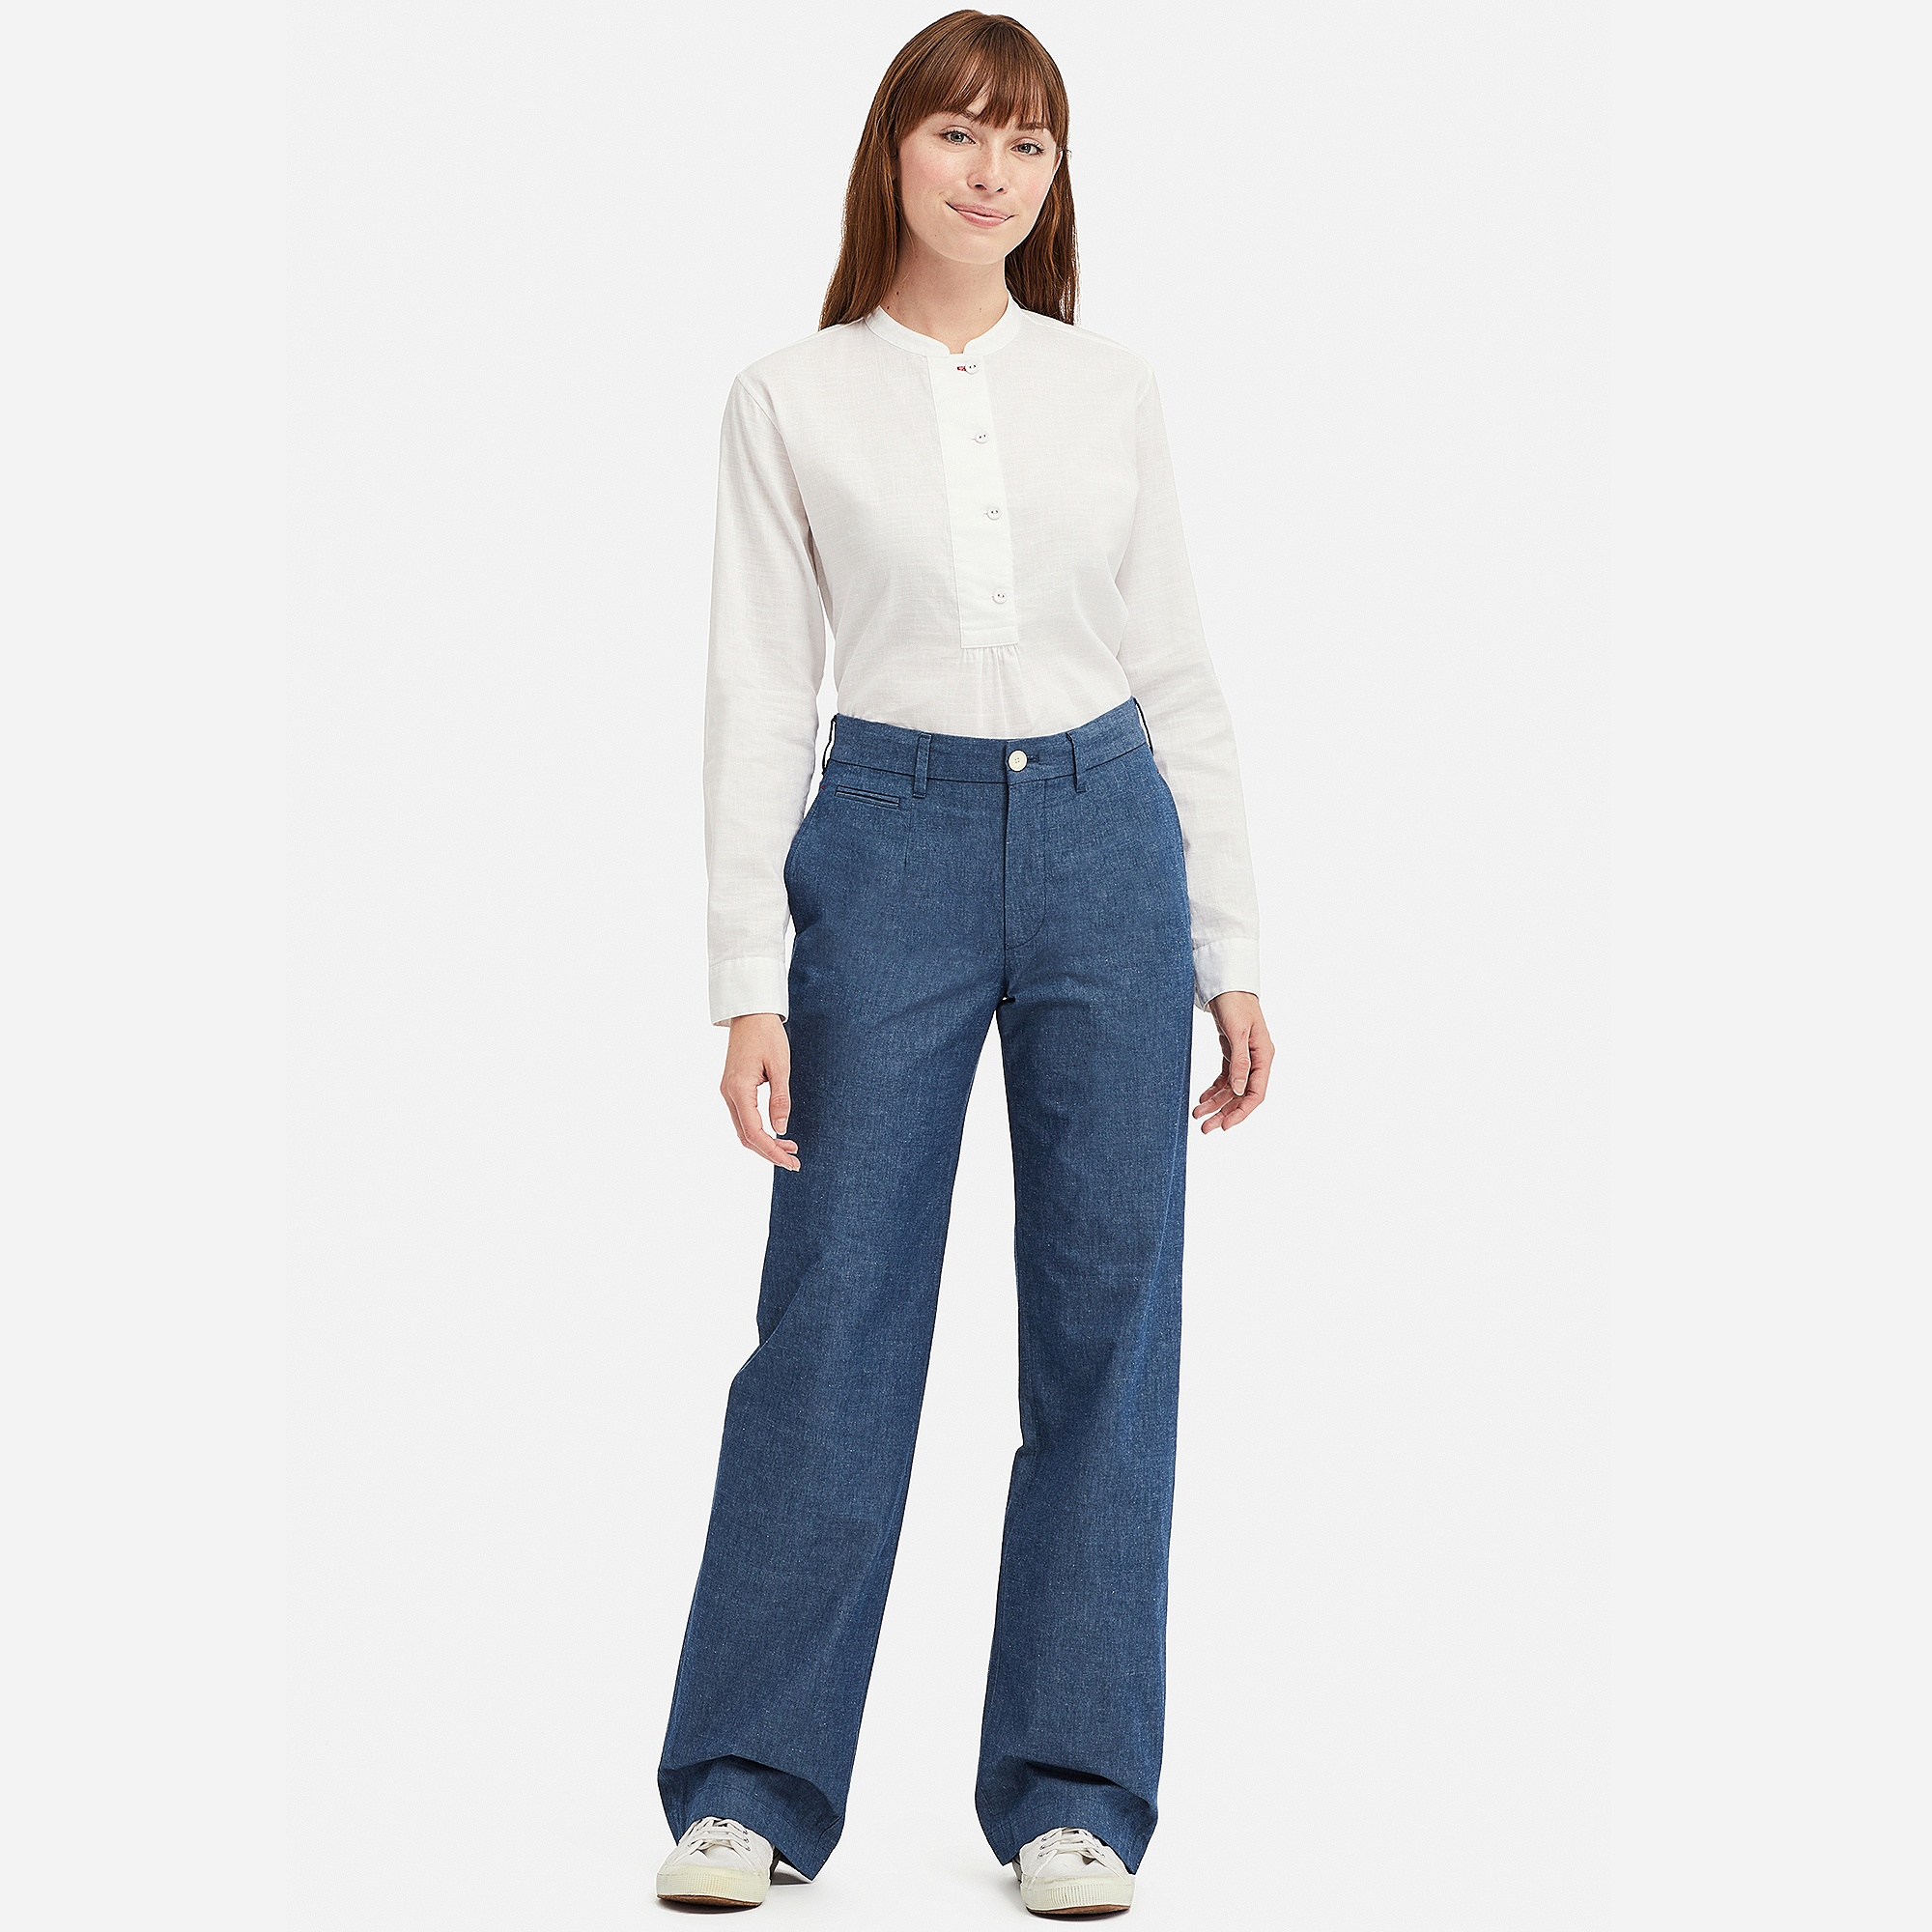 6cdc253a67 Uniqlo INES CHAMBRAY COTTON WIDE LEG TROUSERS at £14.9 | love the brands